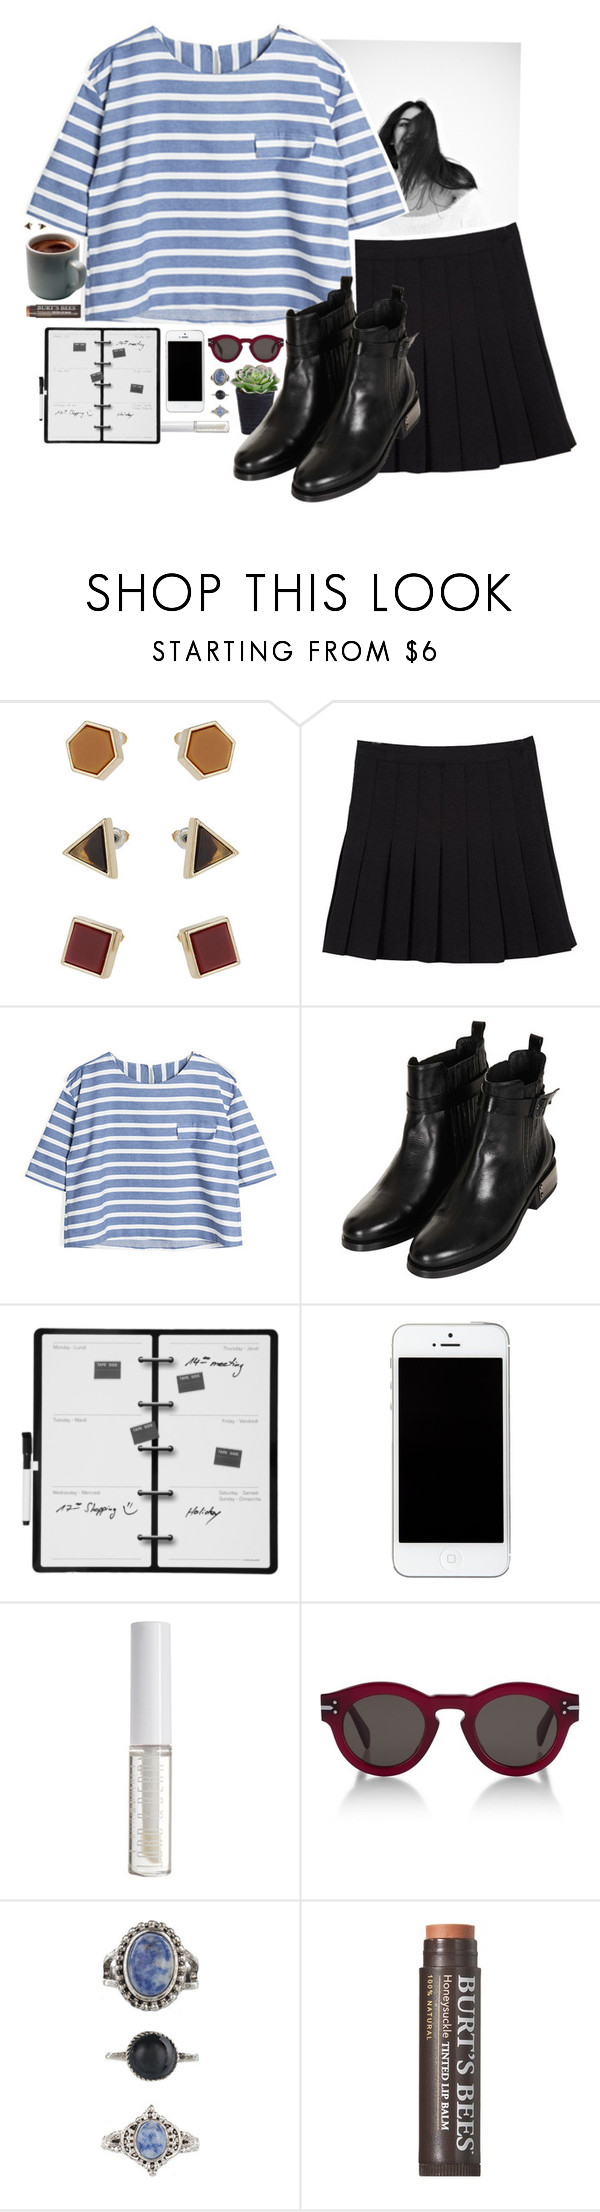 """Life is only a series of events"" by redblossem ❤ liked on Polyvore featuring Topshop, Kikkerland, Lord & Berry, CÉLINE, Lovisa, Burt's Bees, women's clothing, women's fashion, women and female"